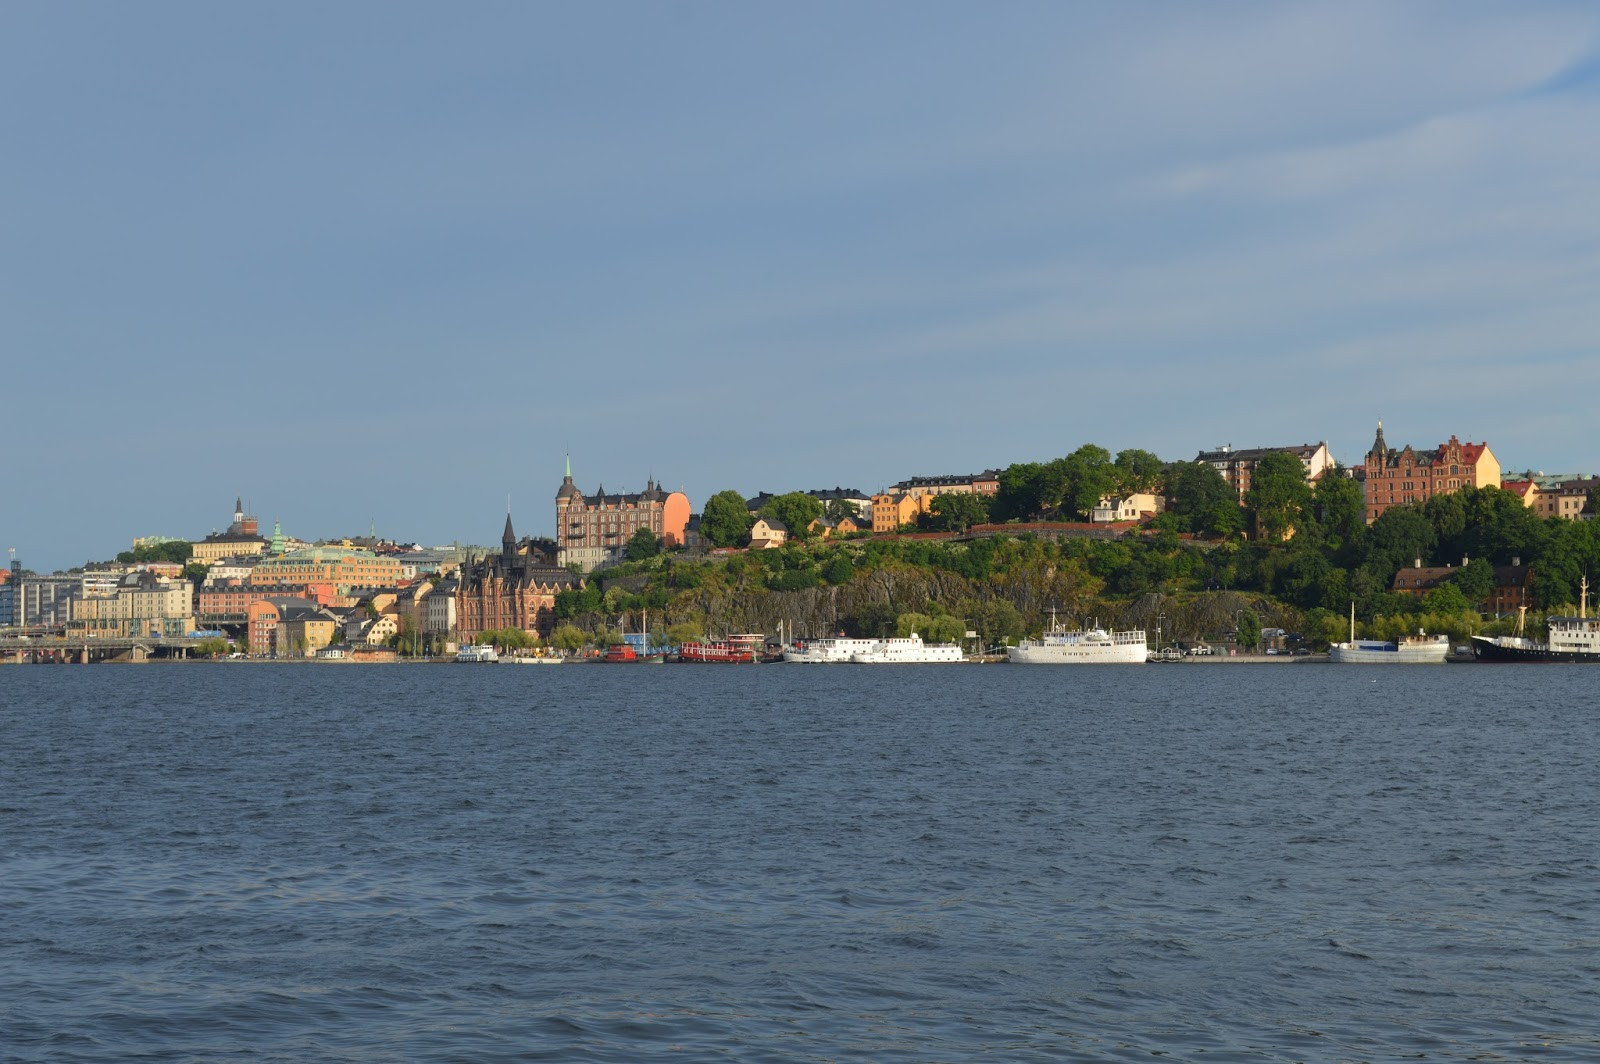 View of Sodermalm, Stockholm